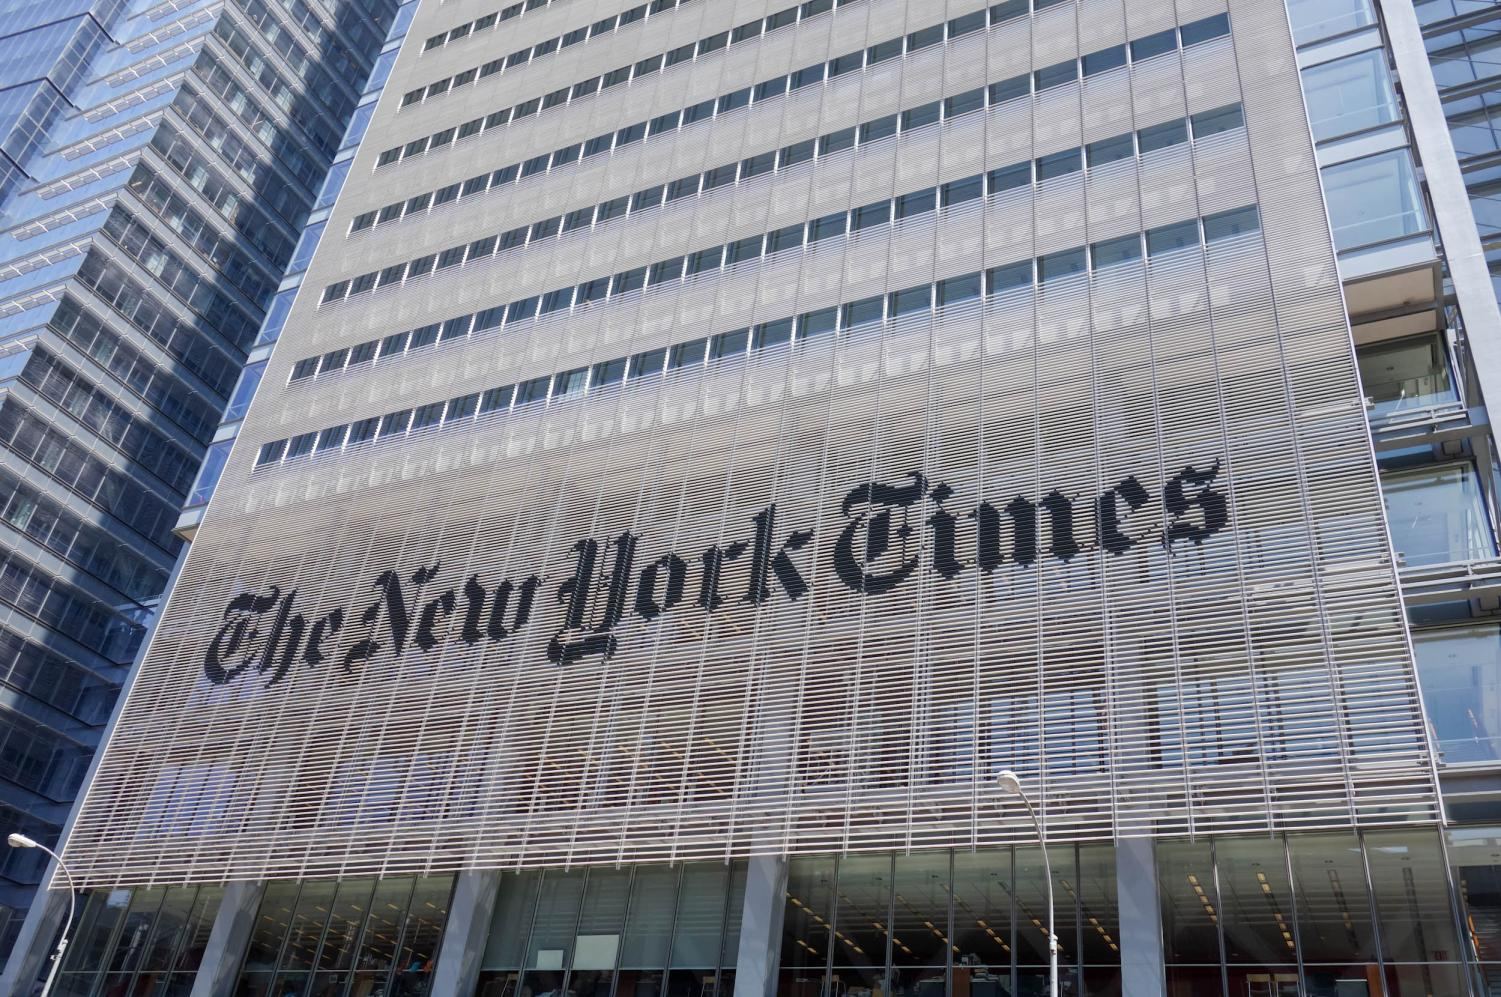 Four students at South Forsyth High School were recognized in the New York Times for their work. The New York Times building, which is located in Midtown Manhattan, New York City, was completed in 2007.